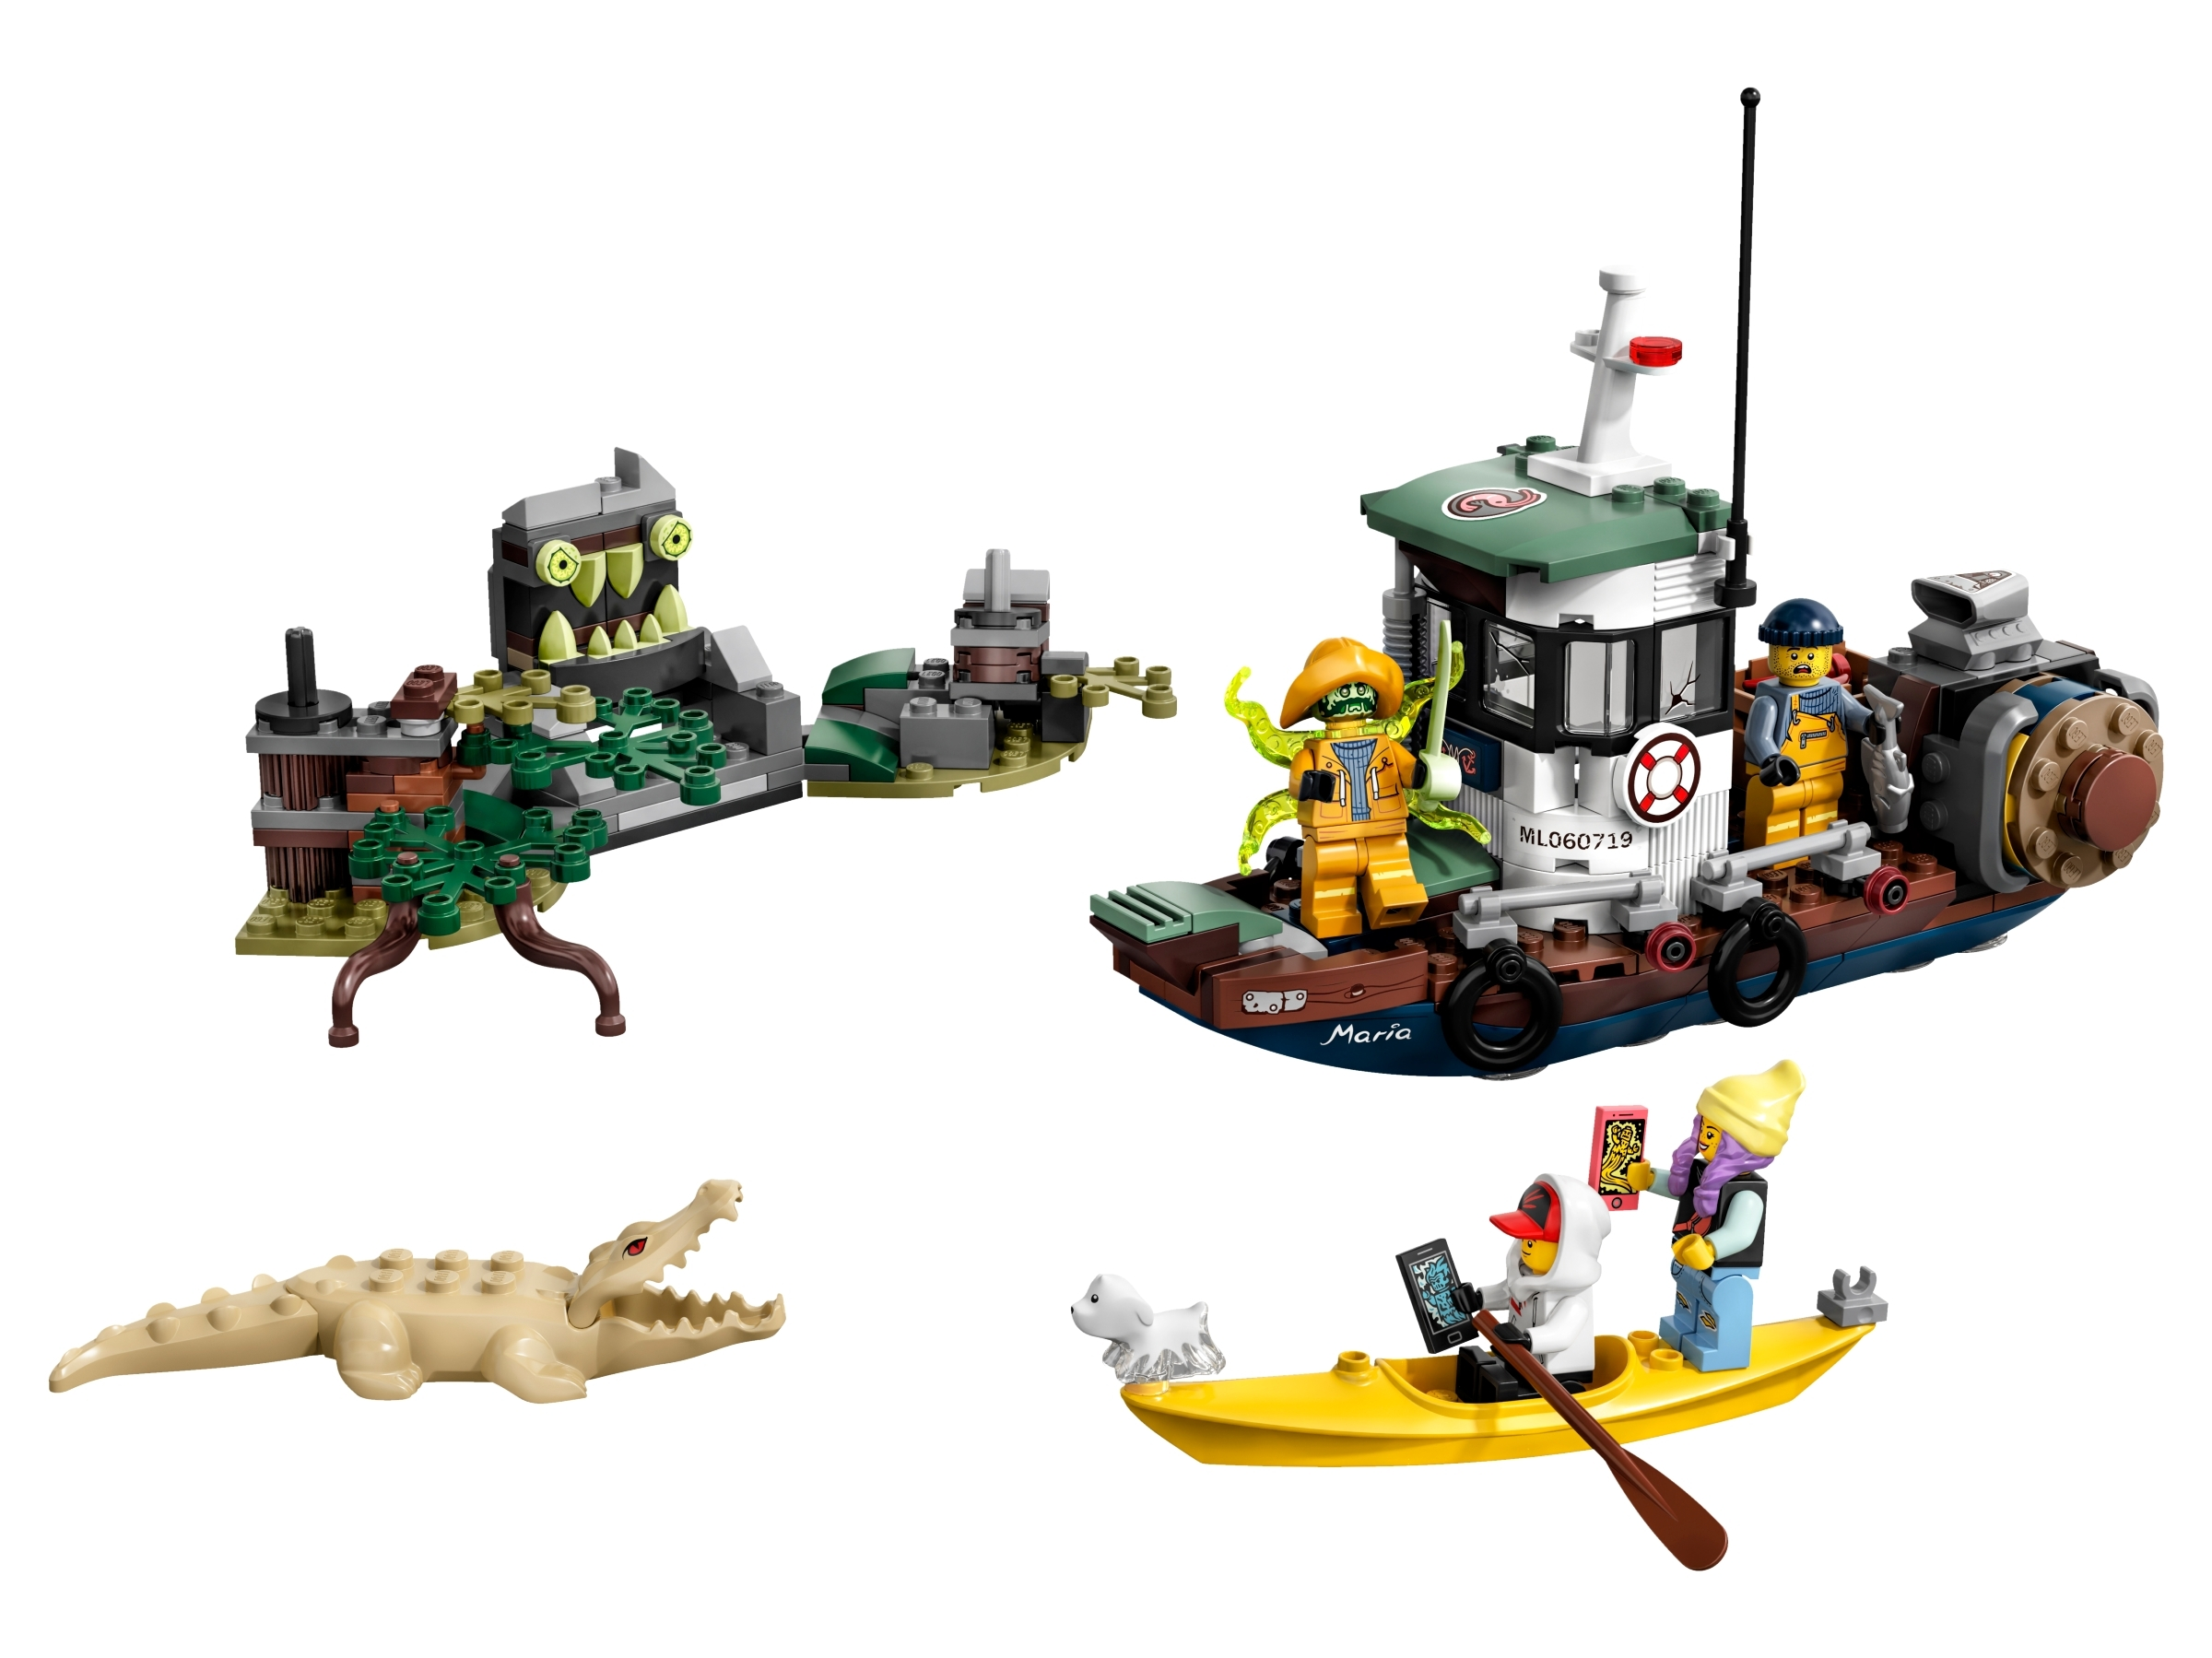 Lego Hidden Side 70419 Minifigures Wrecked Shrimp Boat